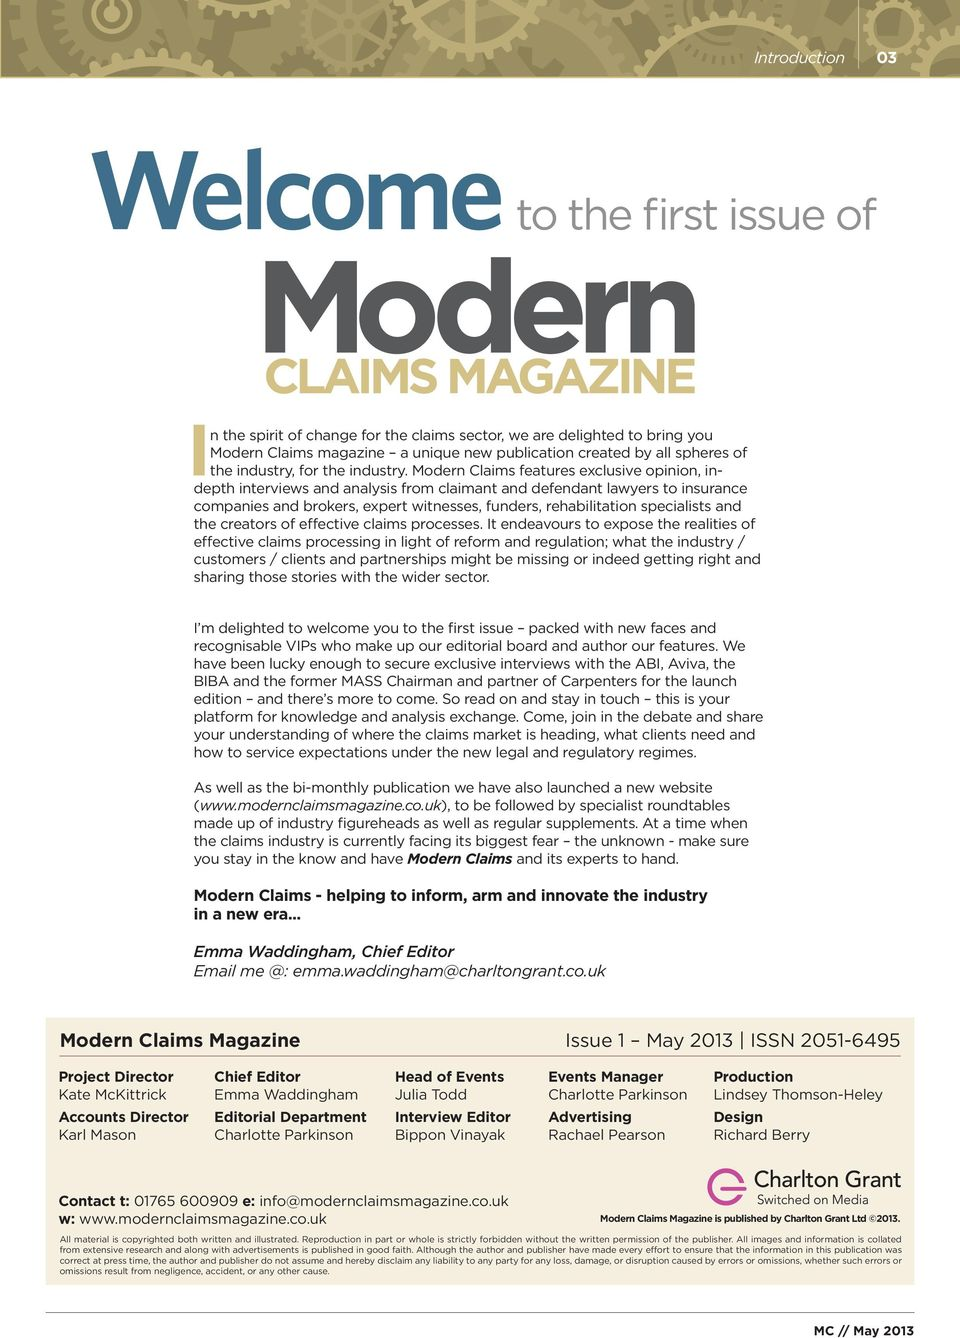 Modern Claims features exclusive opinion, indepth interviews and analysis from claimant and defendant lawyers to insurance companies and brokers, expert witnesses, funders, rehabilitation specialists